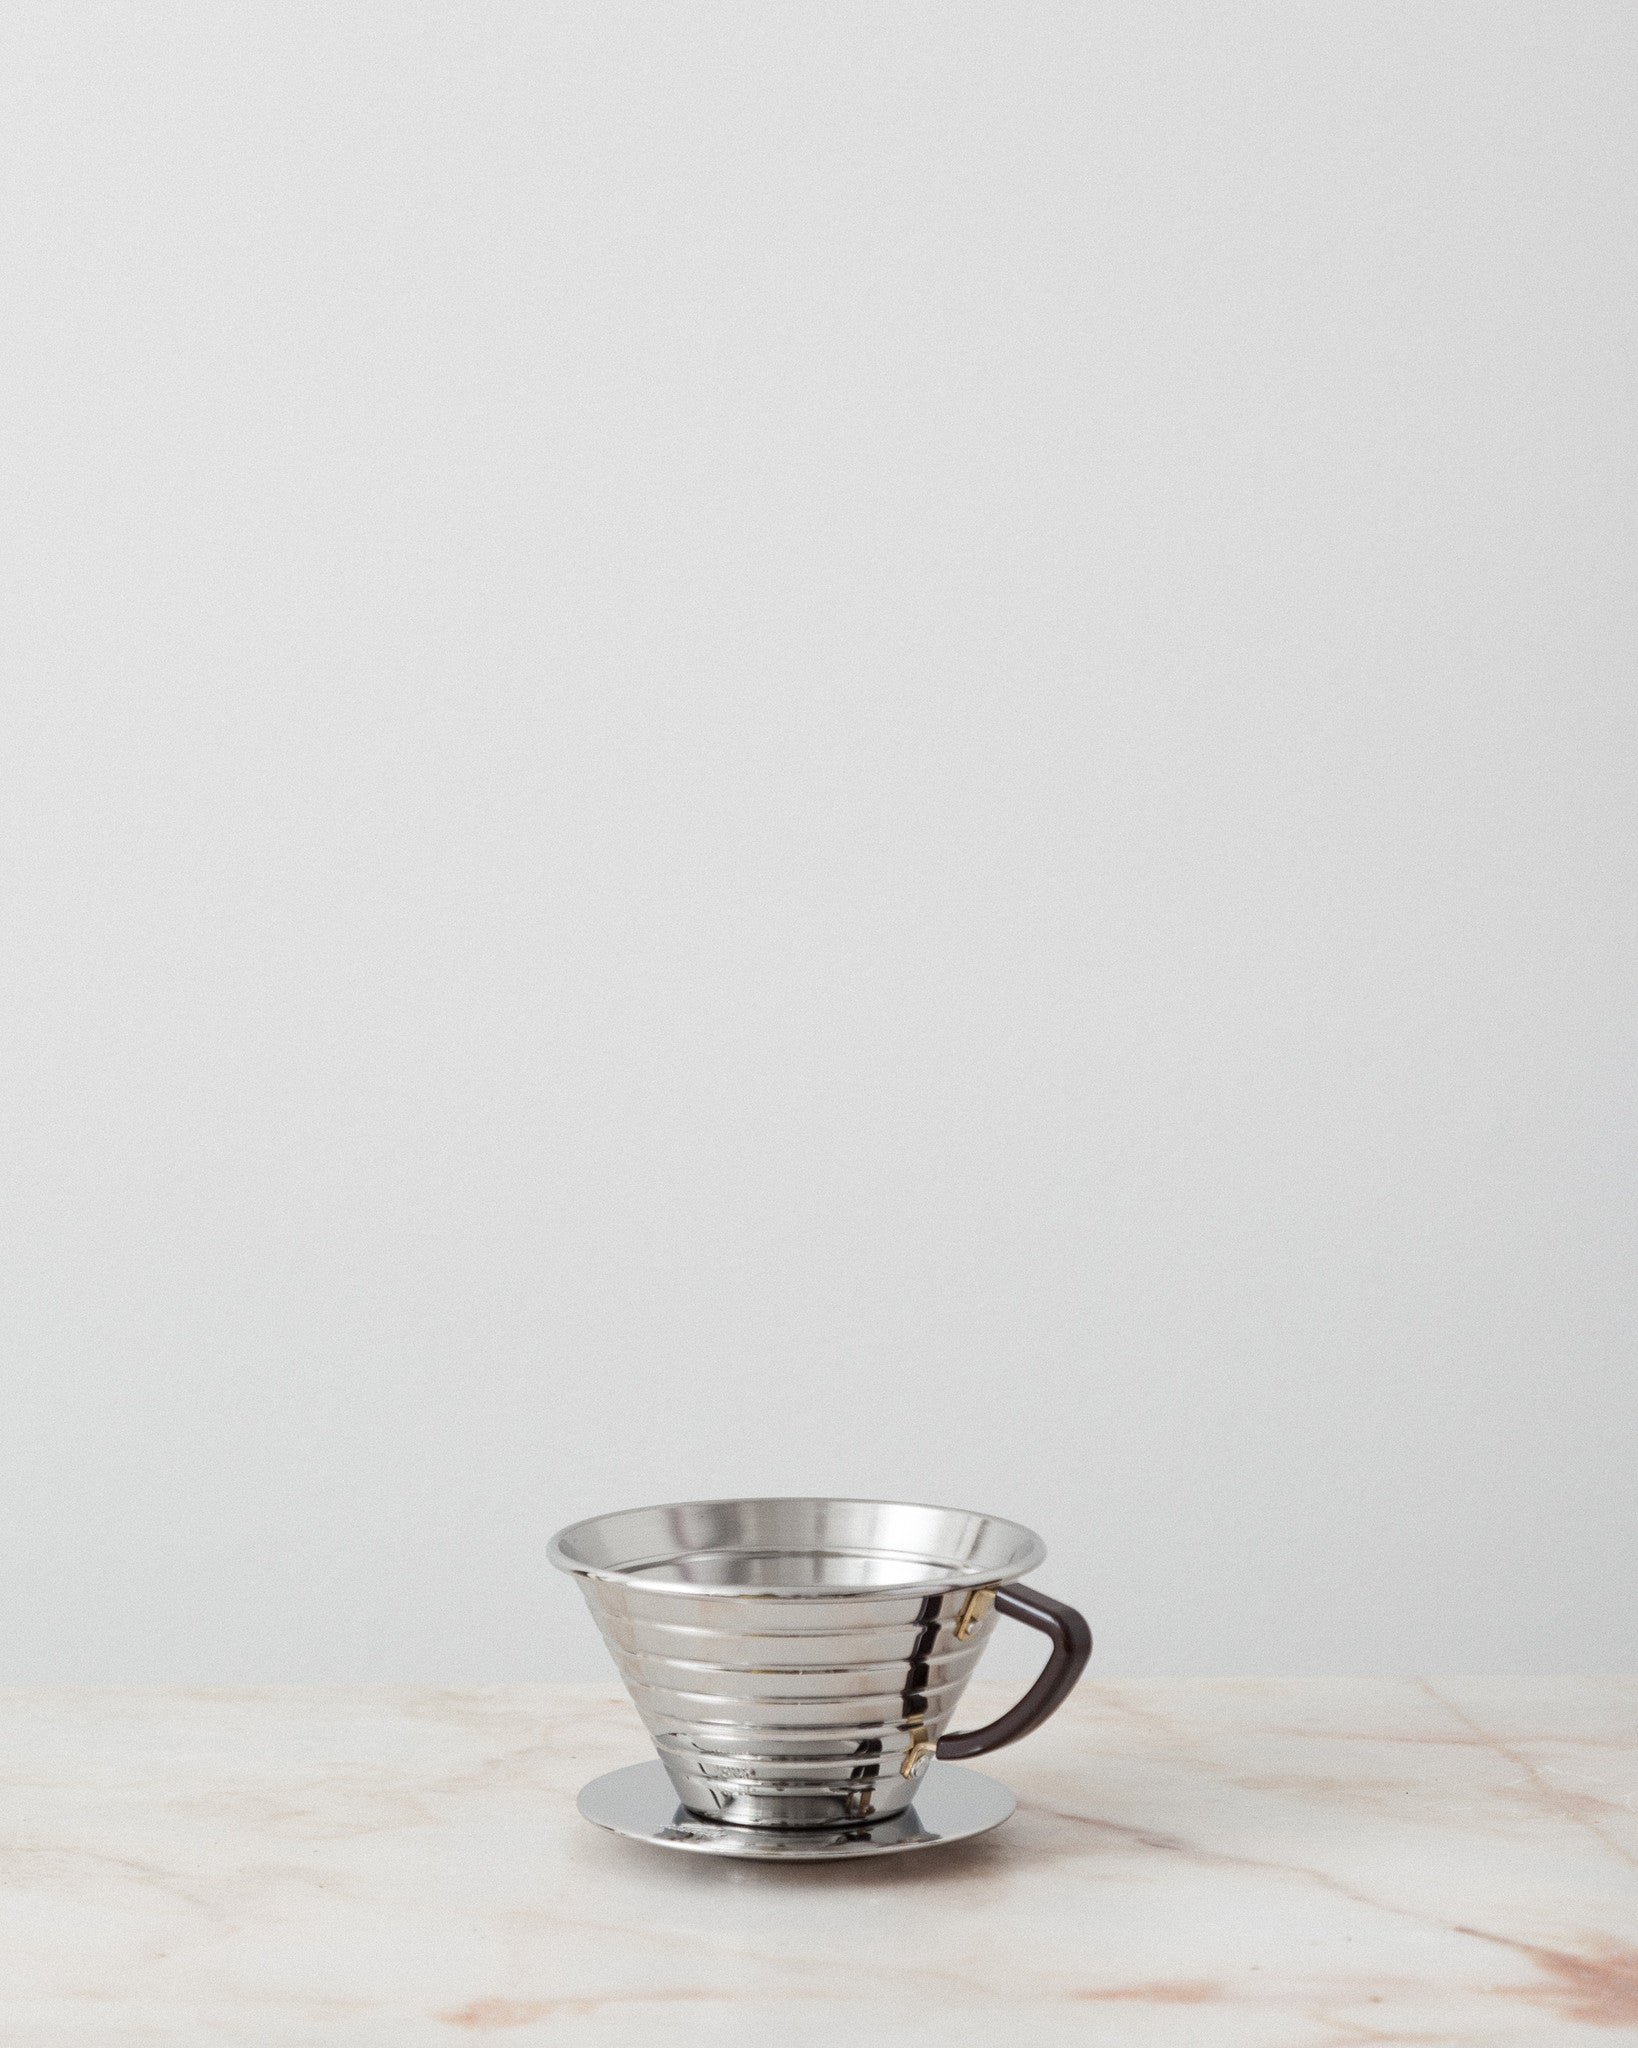 Kalita - Stainless Steel Dripper - 185